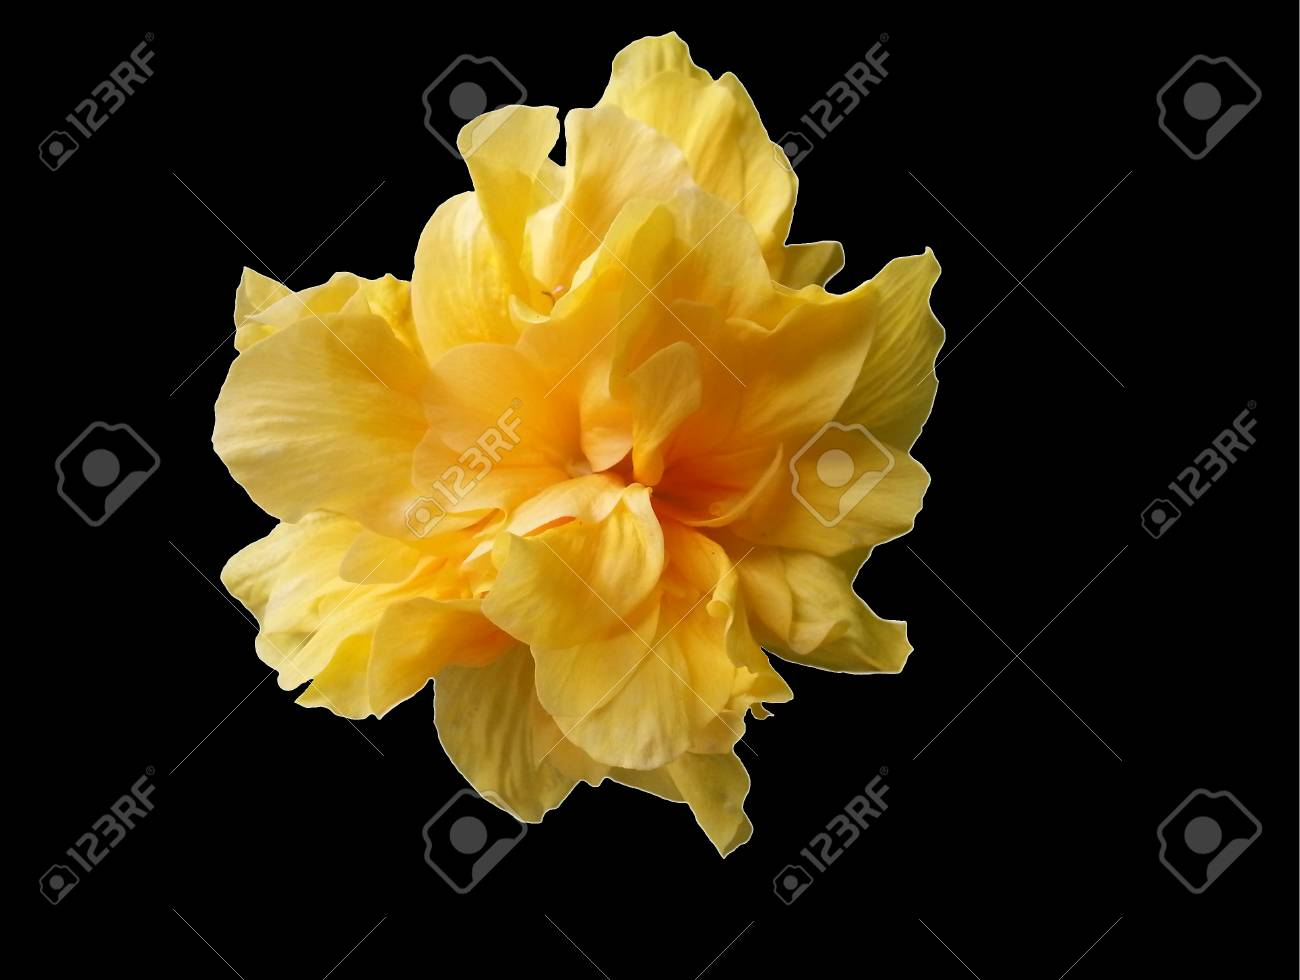 Yellow hibiscus flower on black background with water drop stock photo yellow hibiscus flower on black background with water drop selective focus izmirmasajfo